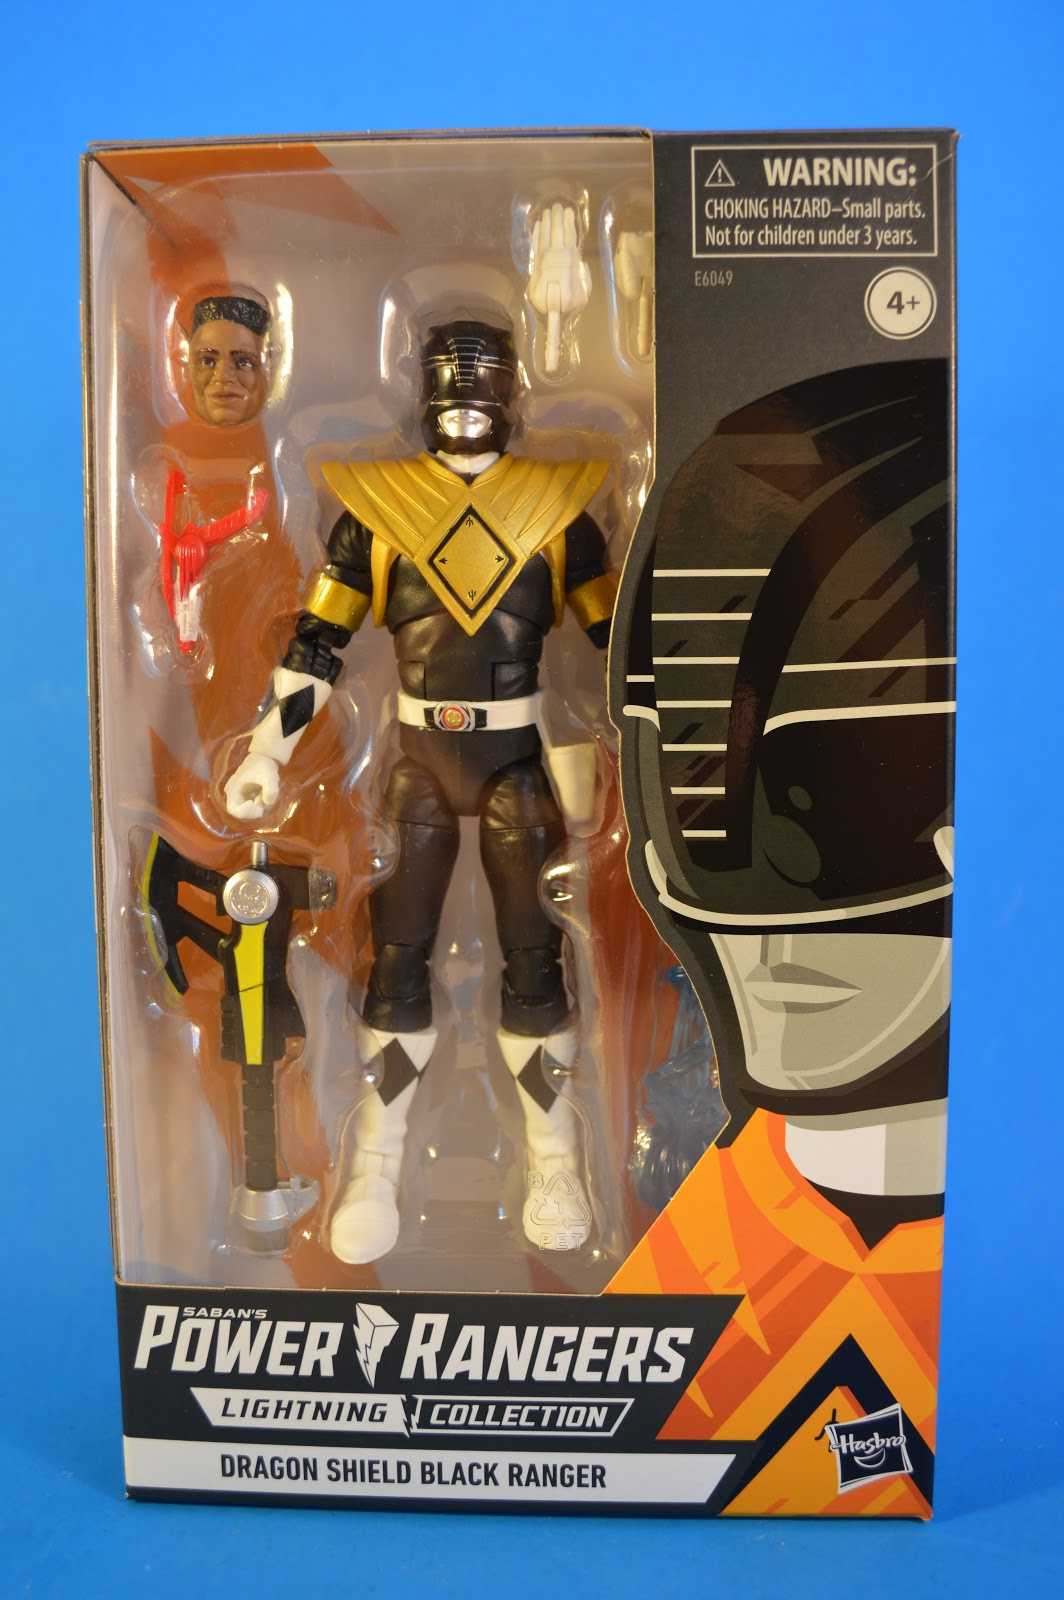 Loveymush Toy Reviews Review Mighty Morphin Power Rangers Walgreens Exclusive Dragon Shield Armored Black Ranger Lightning Collection Hasbro Dragon armor trini, who was previously announced to be coming as a free. black ranger lightning collection hasbro